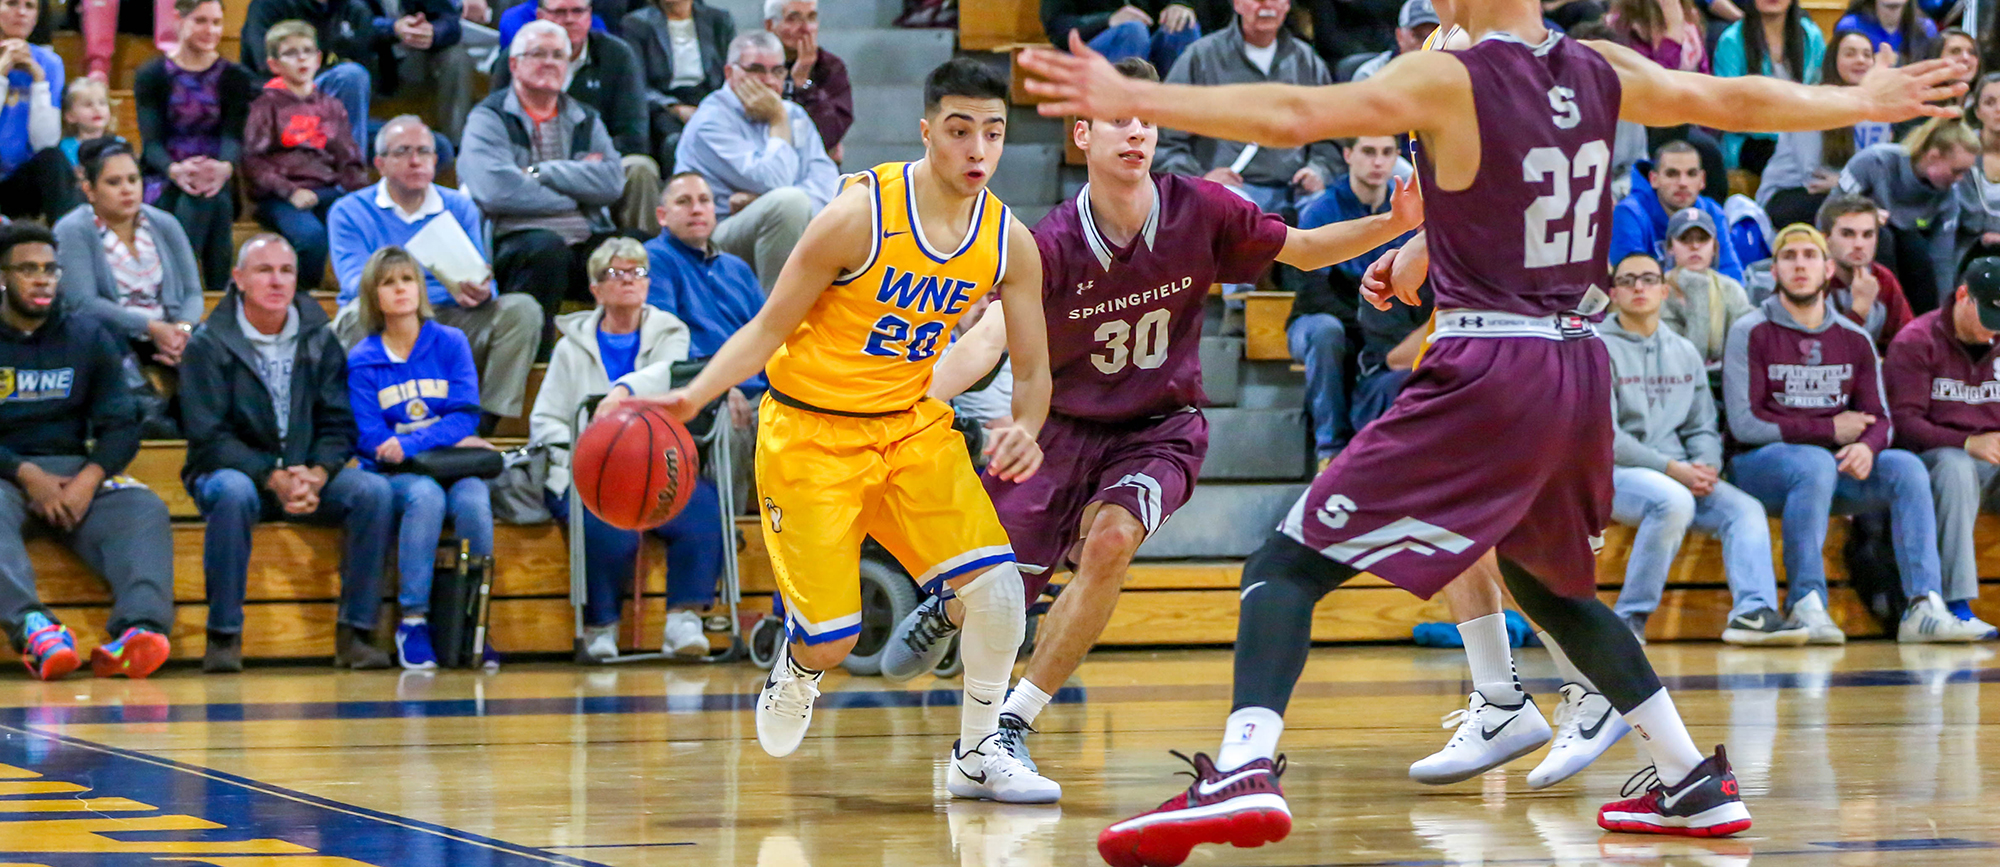 Sophomore guard Nick DeGennaro scored a career-high 13 points in Western New England's win over Curry on Thursday night (Photo by Geoff Riccio).